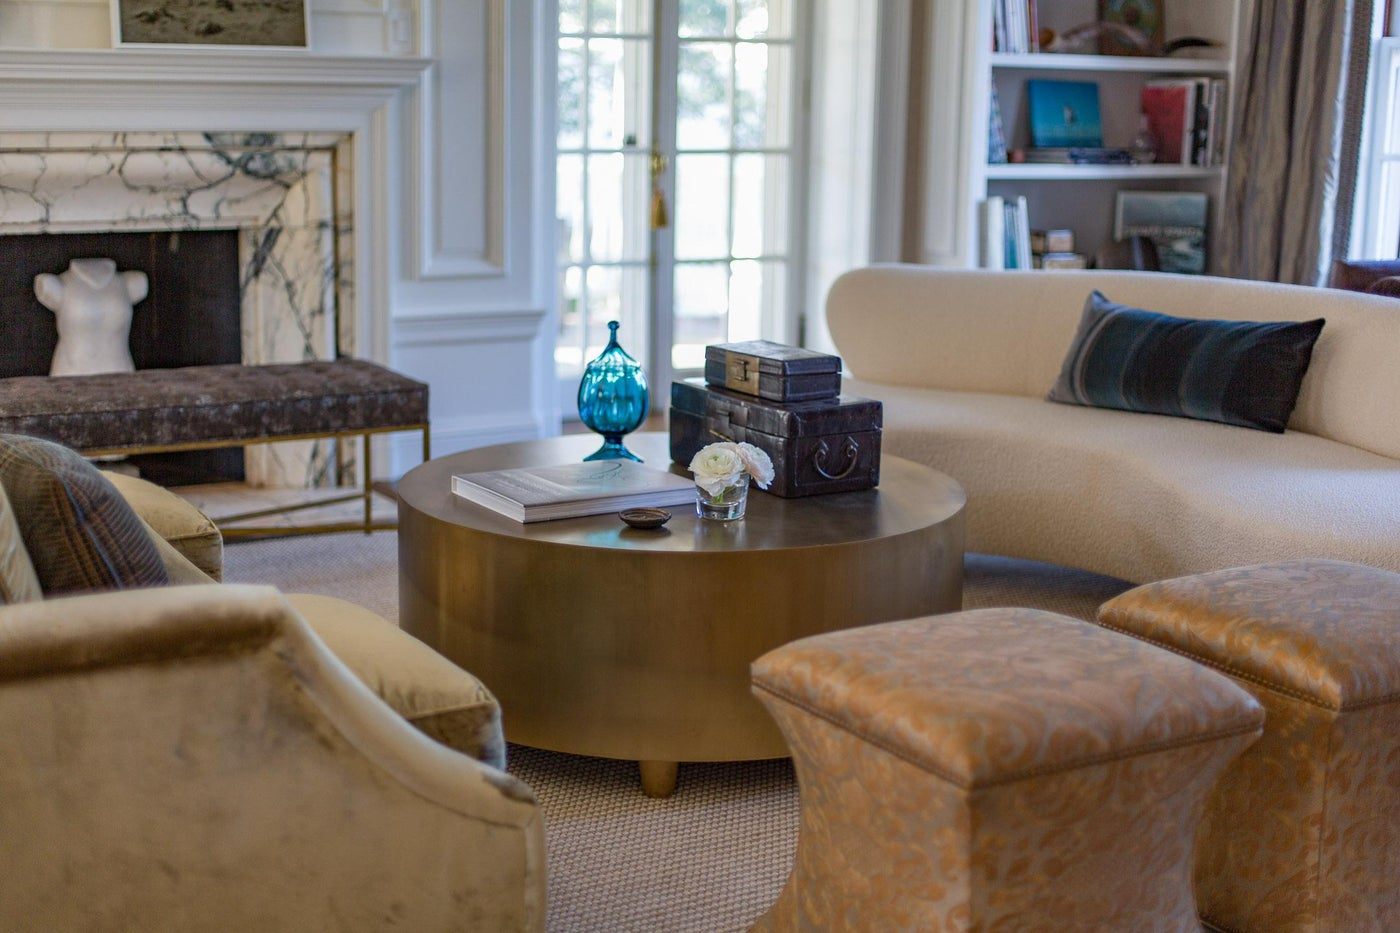 Living Room with Vladimir Kagan Sofa, Fortuny Stools and Round Brass Coffee Table